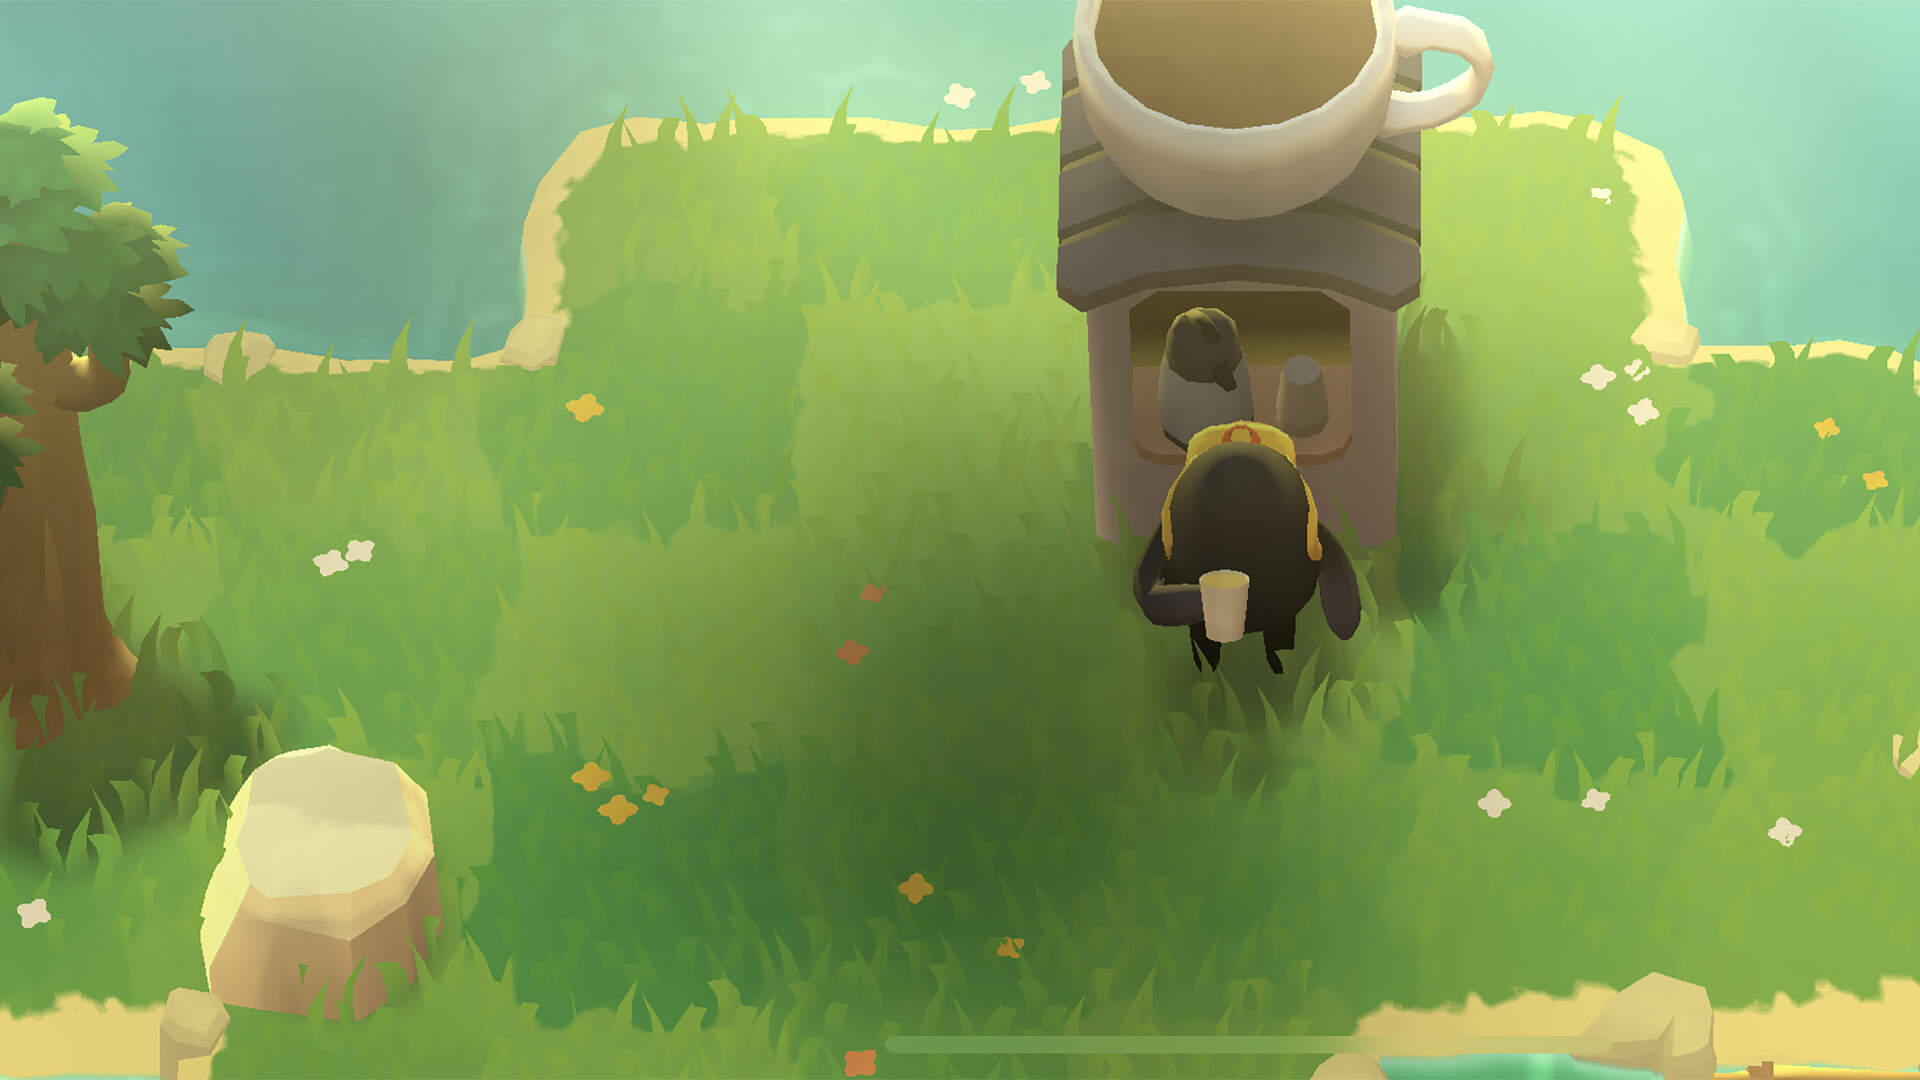 In A Monster's Expedition, Getting Stuck on a Puzzle Isn't the End of the World